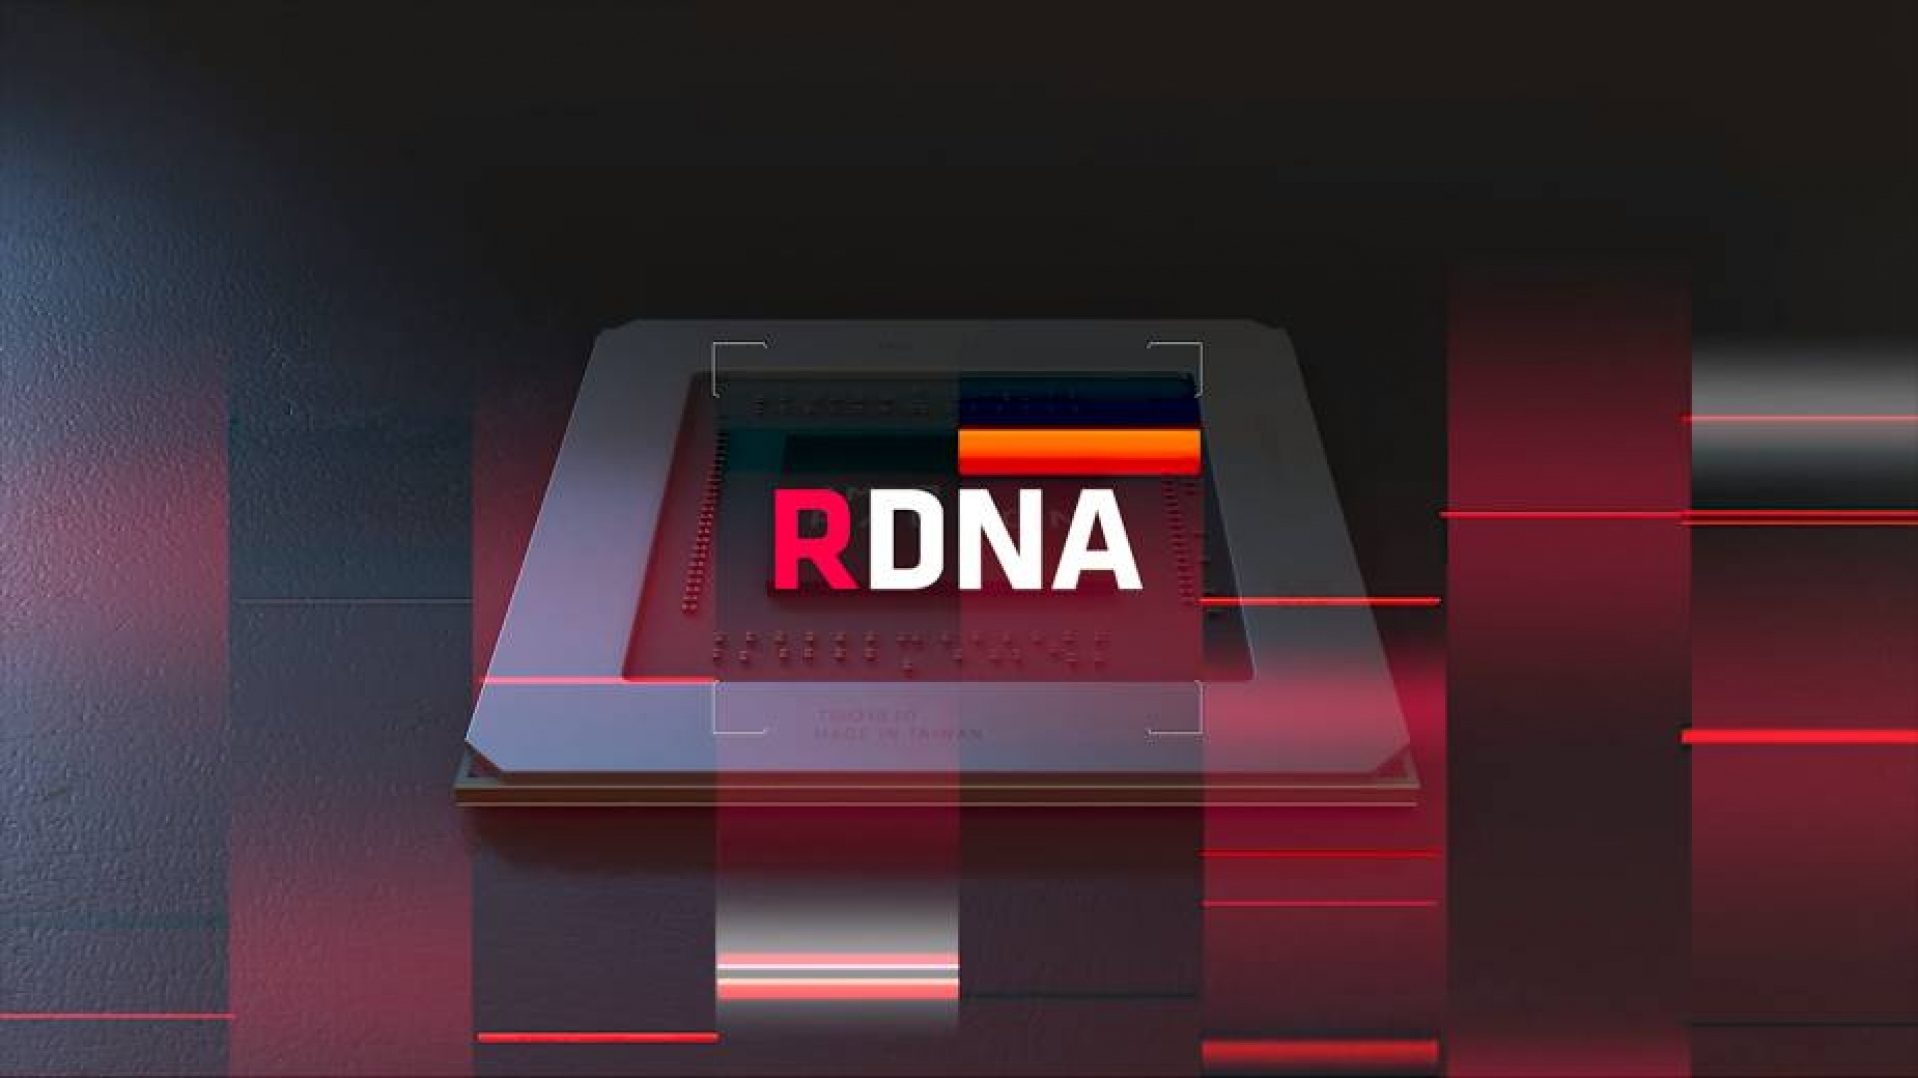 AMD confirms that they have more 7nm products ramping at